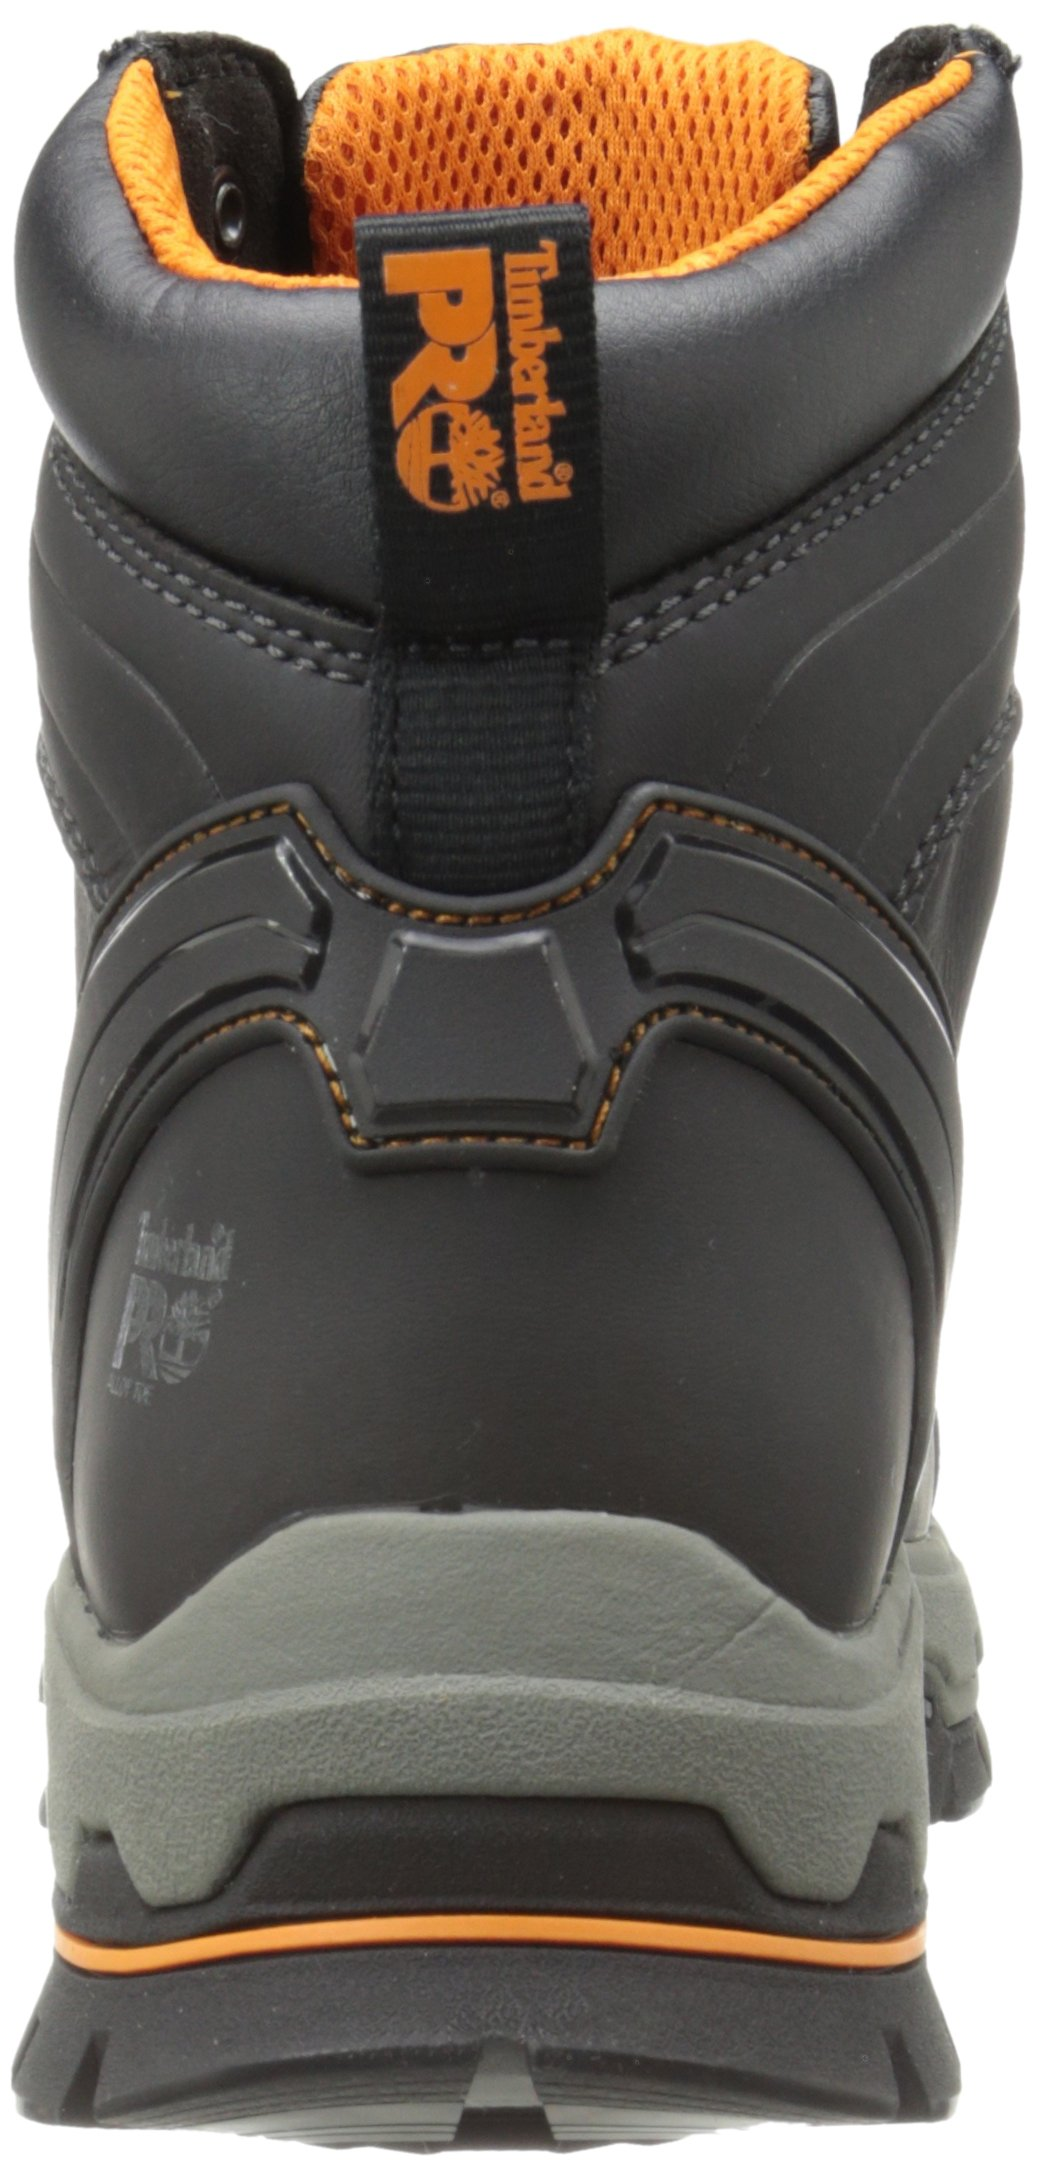 Timberland PRO Men's 6 Inch Stockdale Grip Max Alloy Toe Work and Hunt Boot, Black Microfiber, 5.5 M US by Timberland PRO (Image #2)